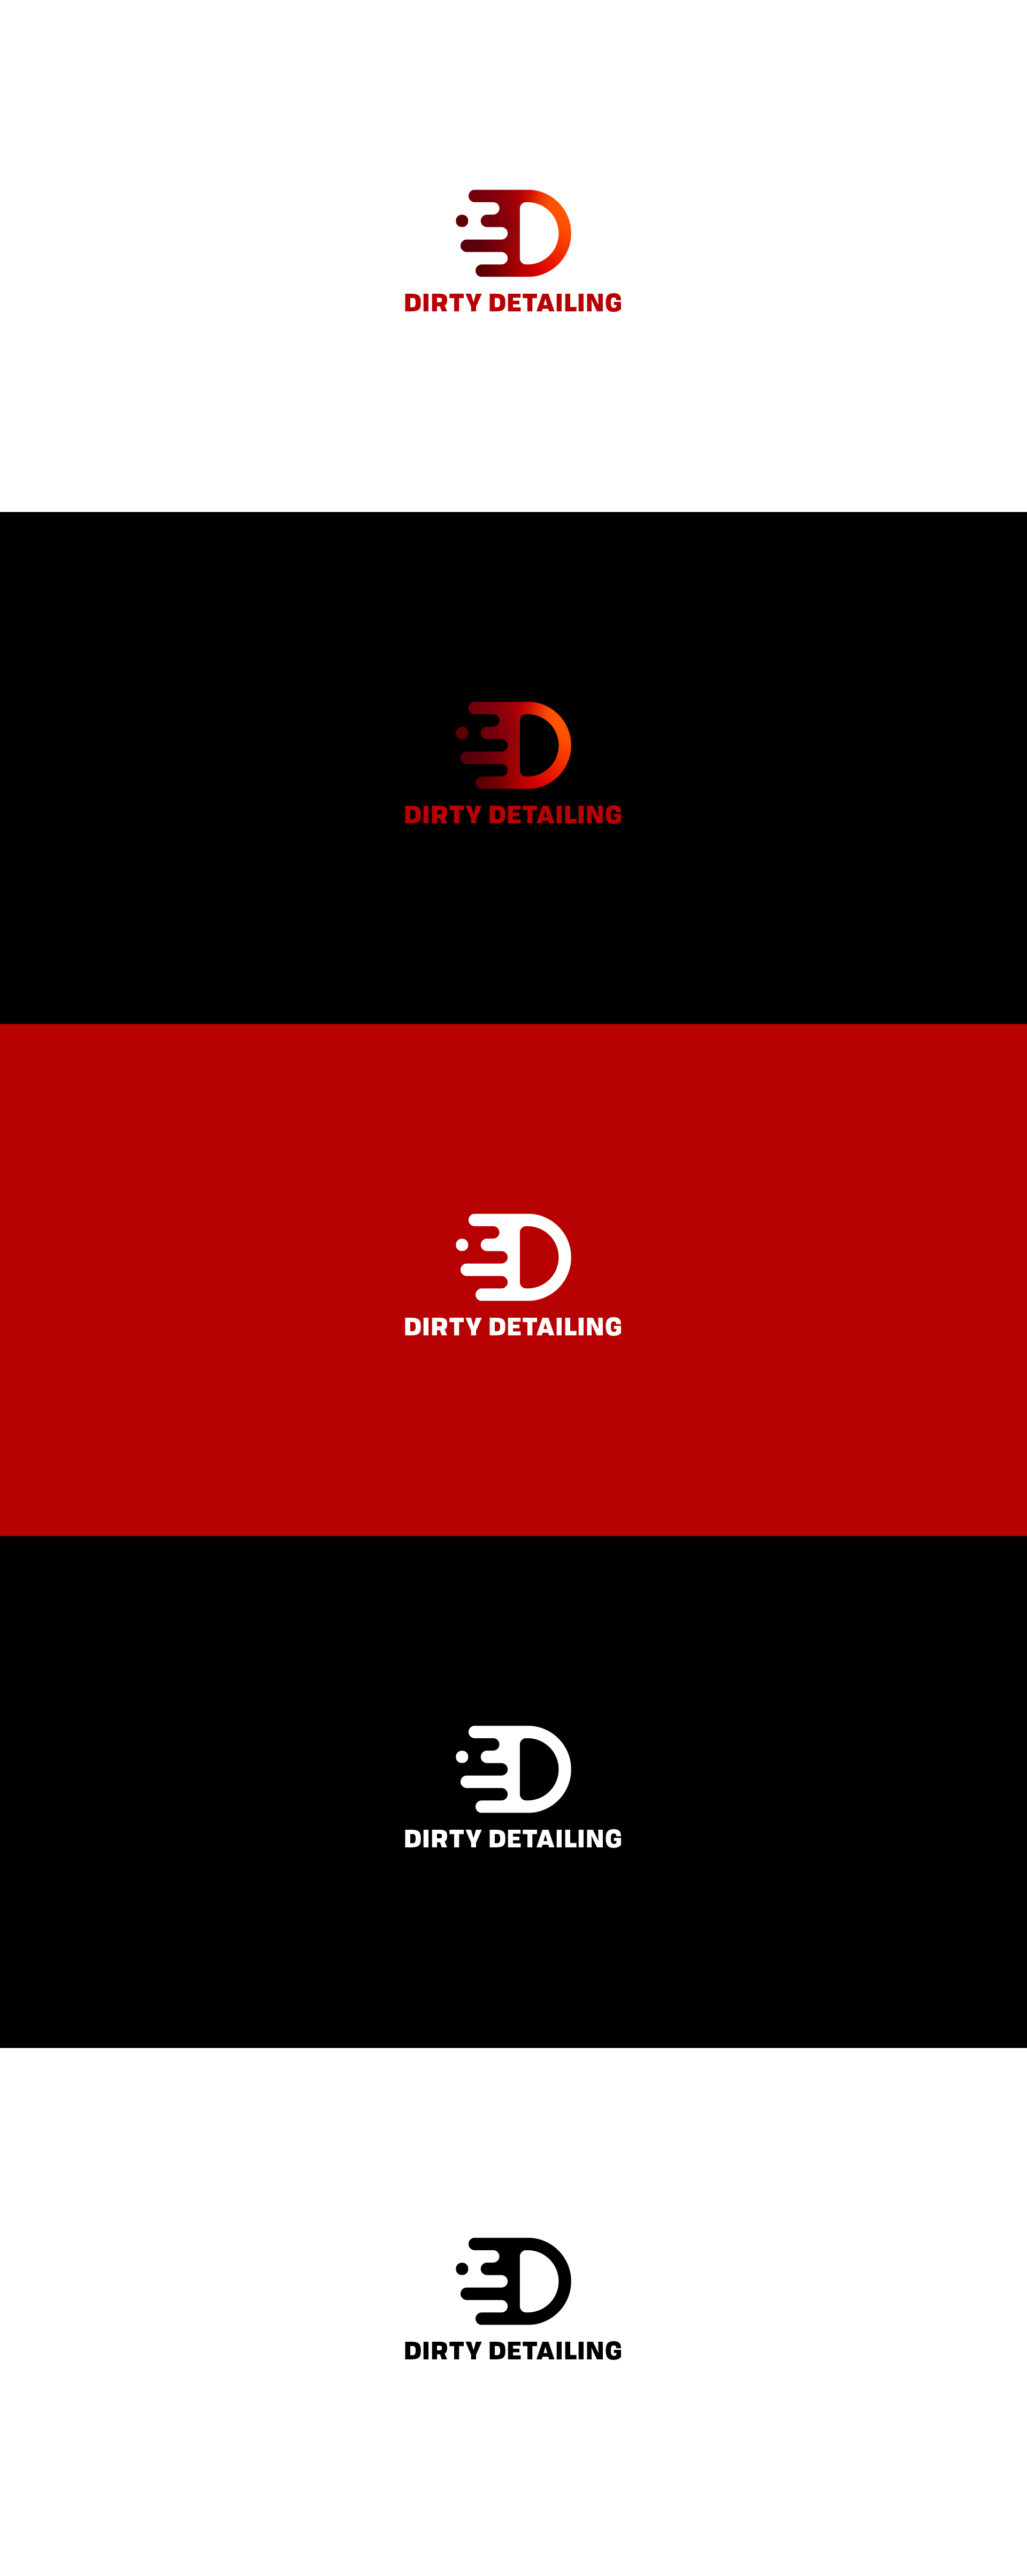 Dirty Detailing Style Guide